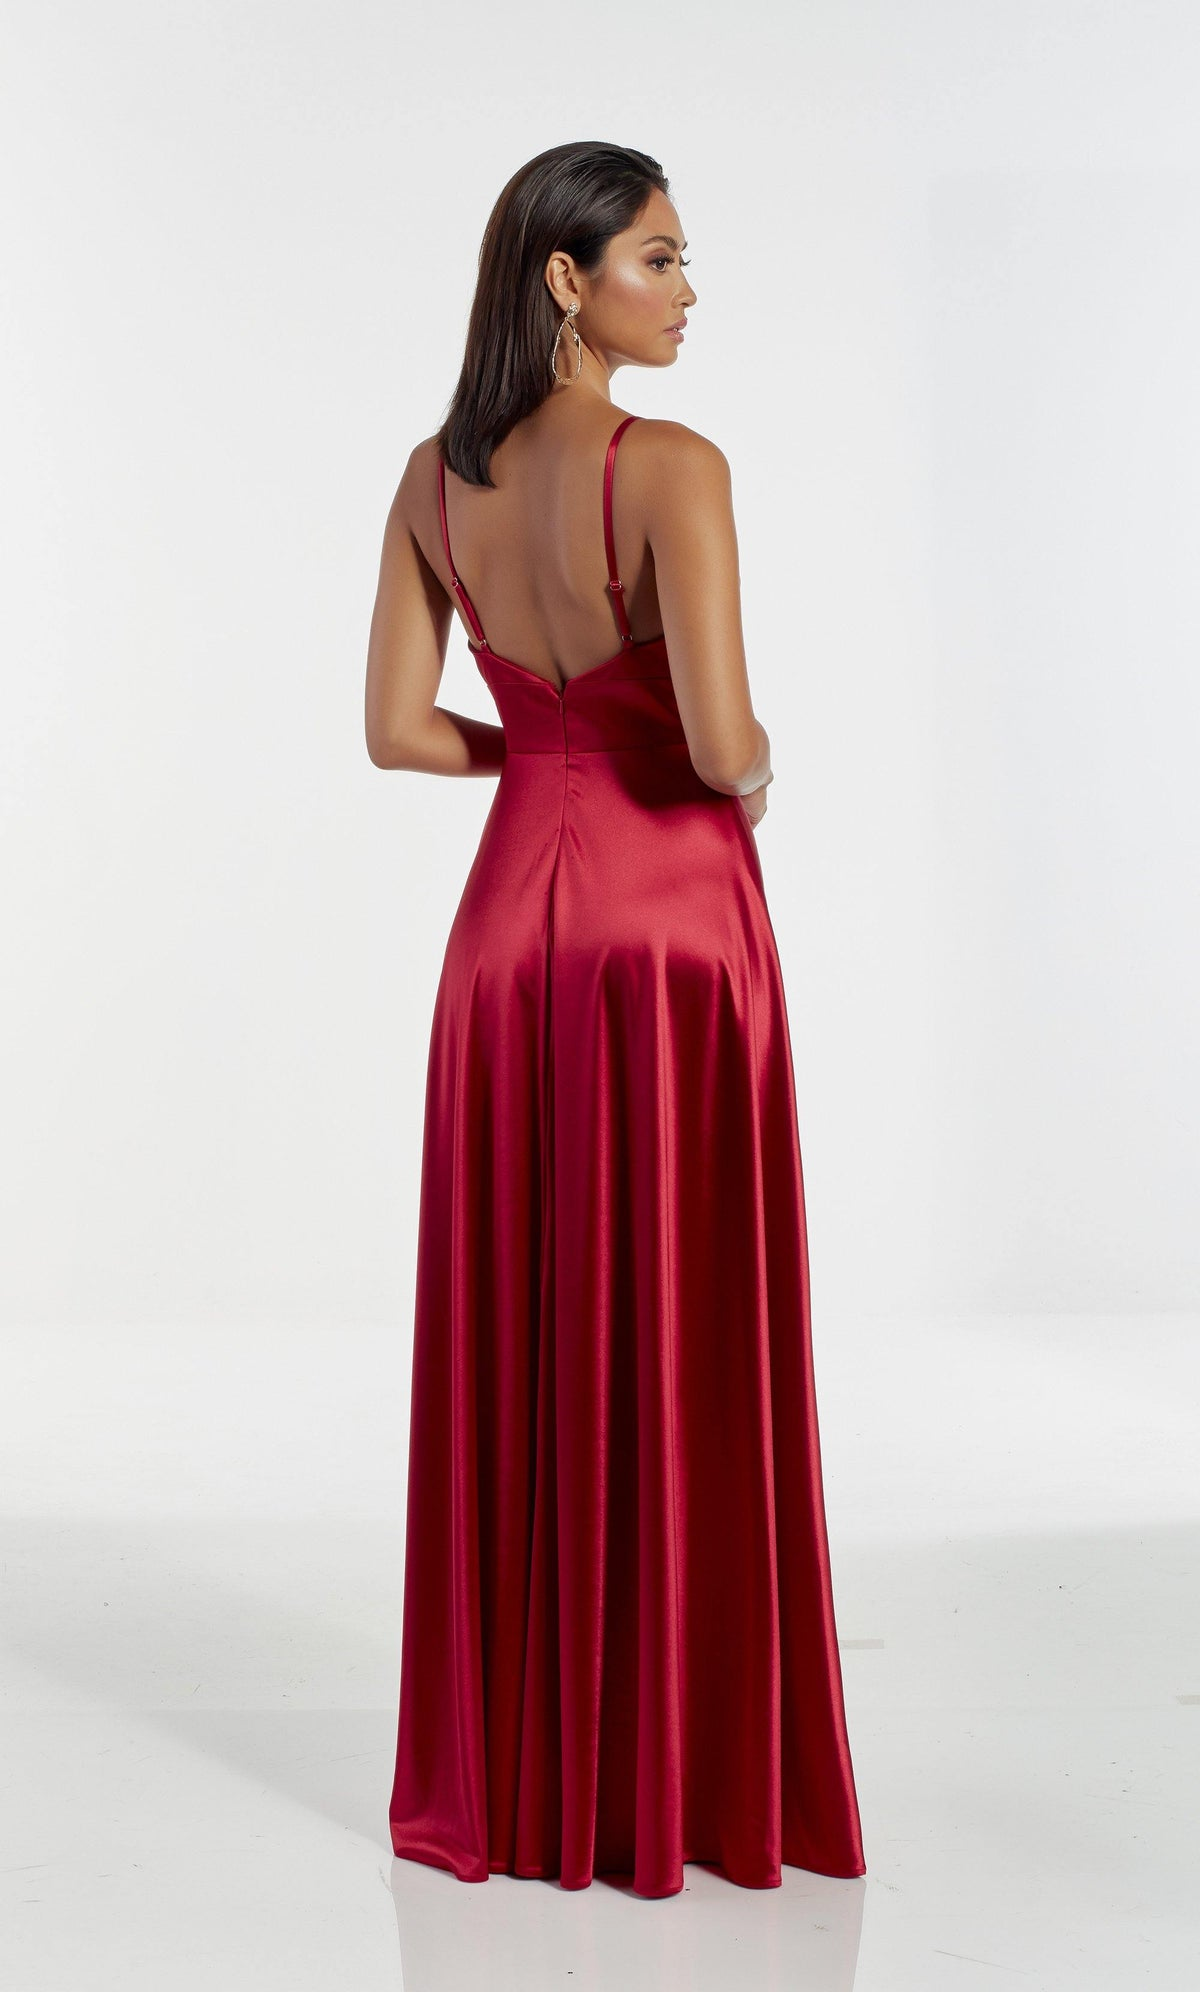 Red flowy satin formal dress with an open back and adjustable straps